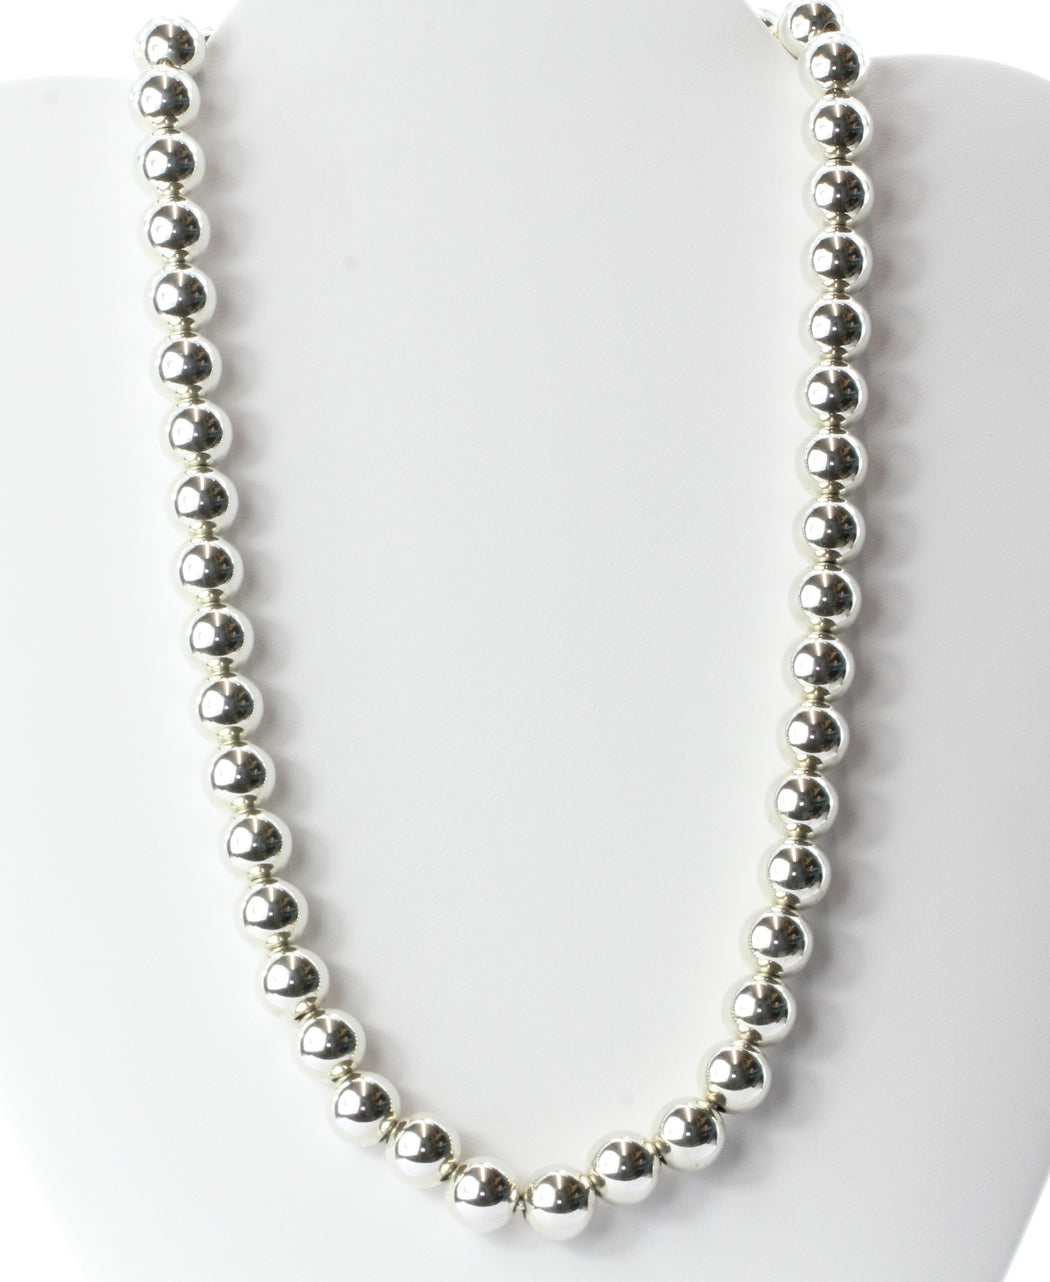 70d7d06e9 Tiffany & Co Sterling Silver Ball Beaded Necklace 18